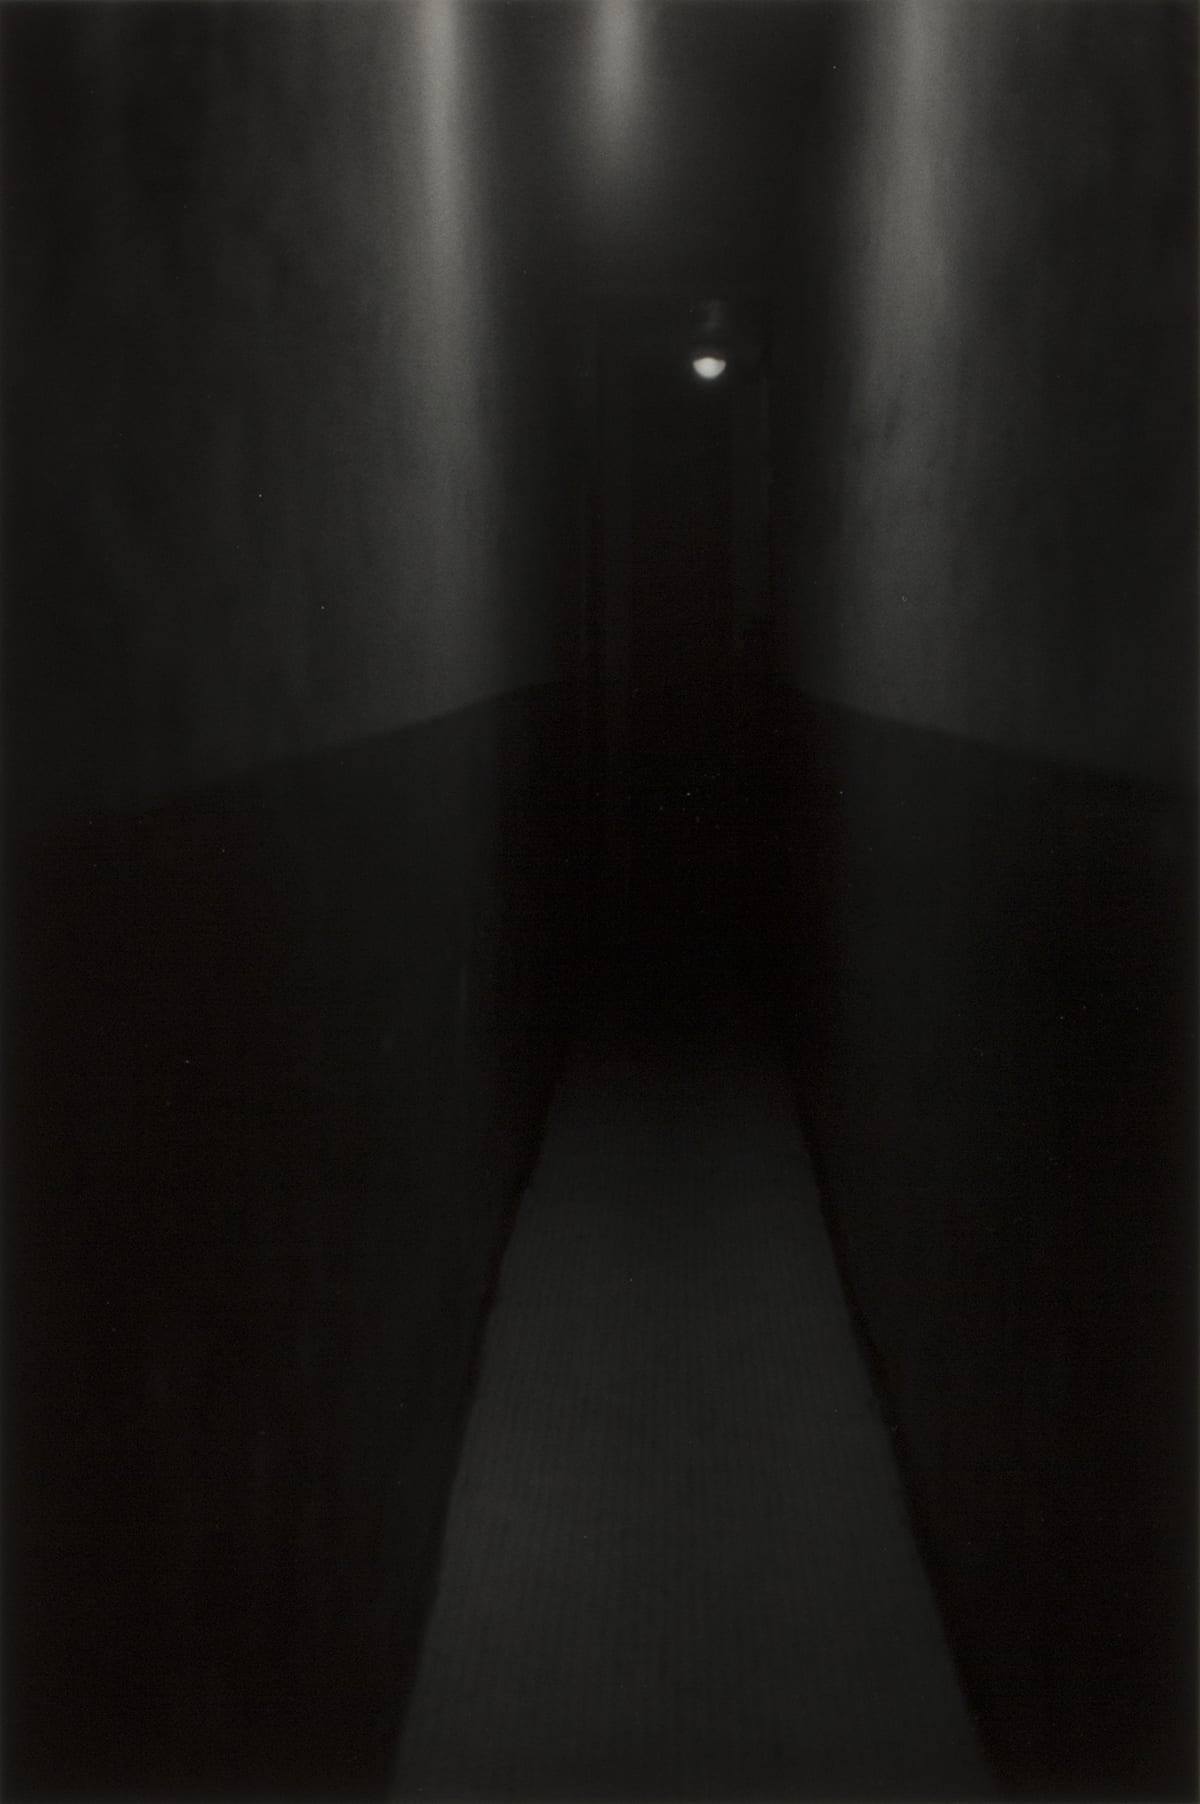 "Hallway, New York. Roy DeCarava 1953. 12 15/16"" x 8 5/8"". Gelatin silver print. Landscape oriented black and white photo. View down a long, dark, narrow hallway. The bottom half of the walls are dark black and the top half dark gray. At the distant end of the hallway is a narrow door that is closed. Above is a single white light with a dome cover."